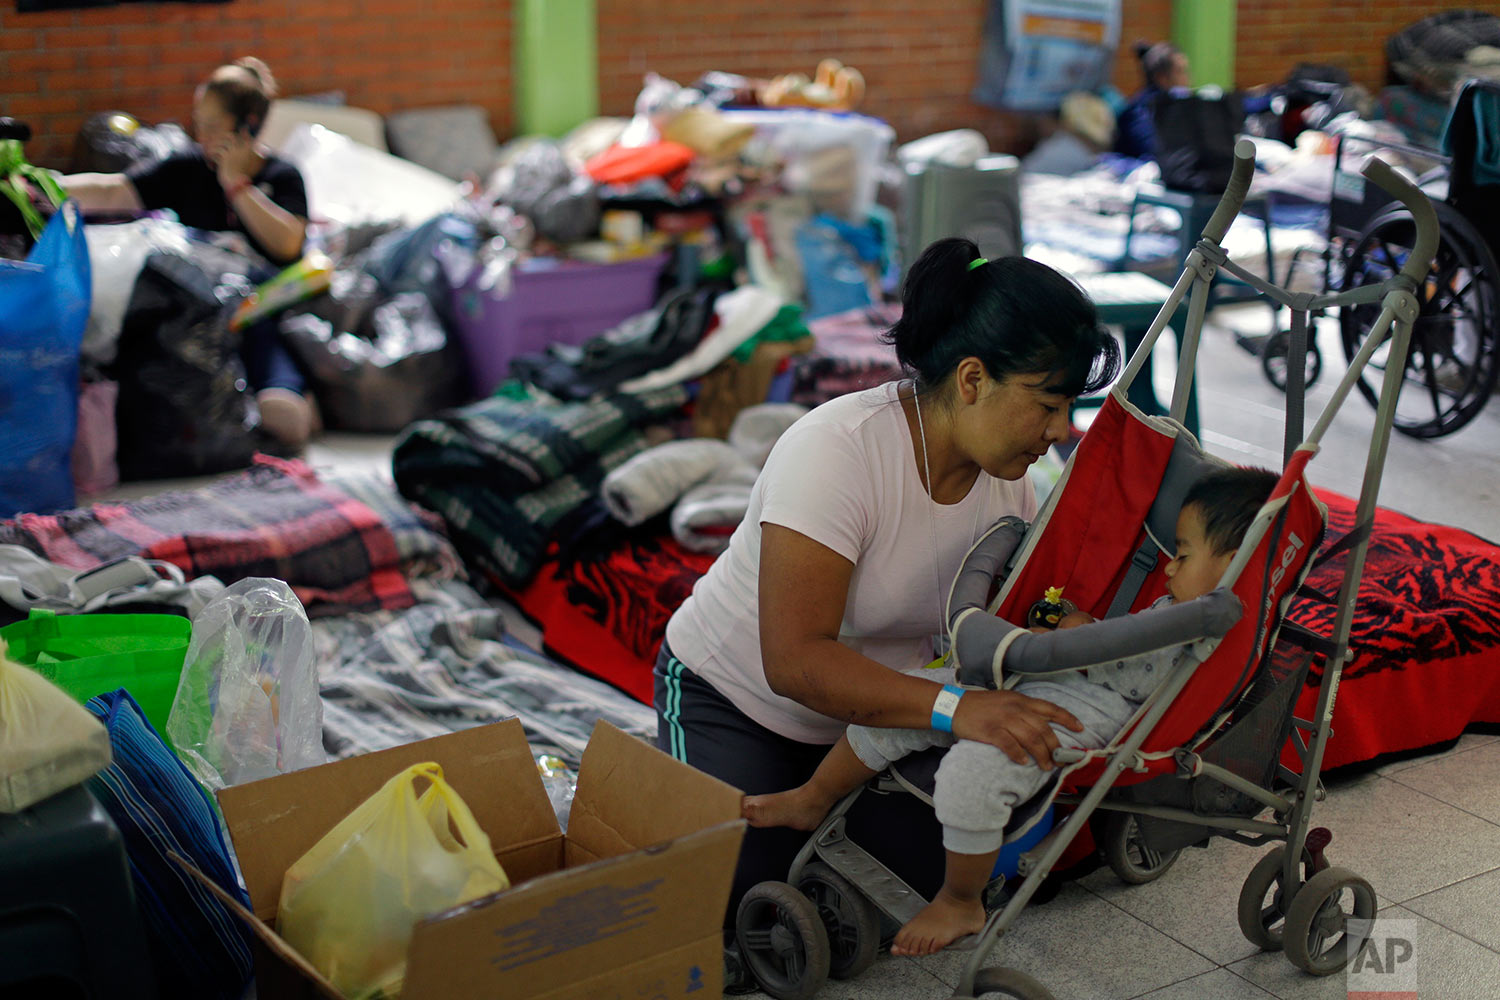 Florencia Cortes, 37, cares for her son Jonatan at the Francisco Kino school, which was turned into a temporary shelter for residents evacuated from the large apartment complex in the Tlalpan neighborhood of Mexico City, Monday, Sept. 25, 2017. Cortes was pulled from the rubble of her apartment building along with her one-year, eight-months-old son, Jonatan. In order to get her son out, she had to swing him toward the building's plumber, who happened to be outside. He caught ahold of the boy by his foot. (AP Photo/Natacha Pisarenko)